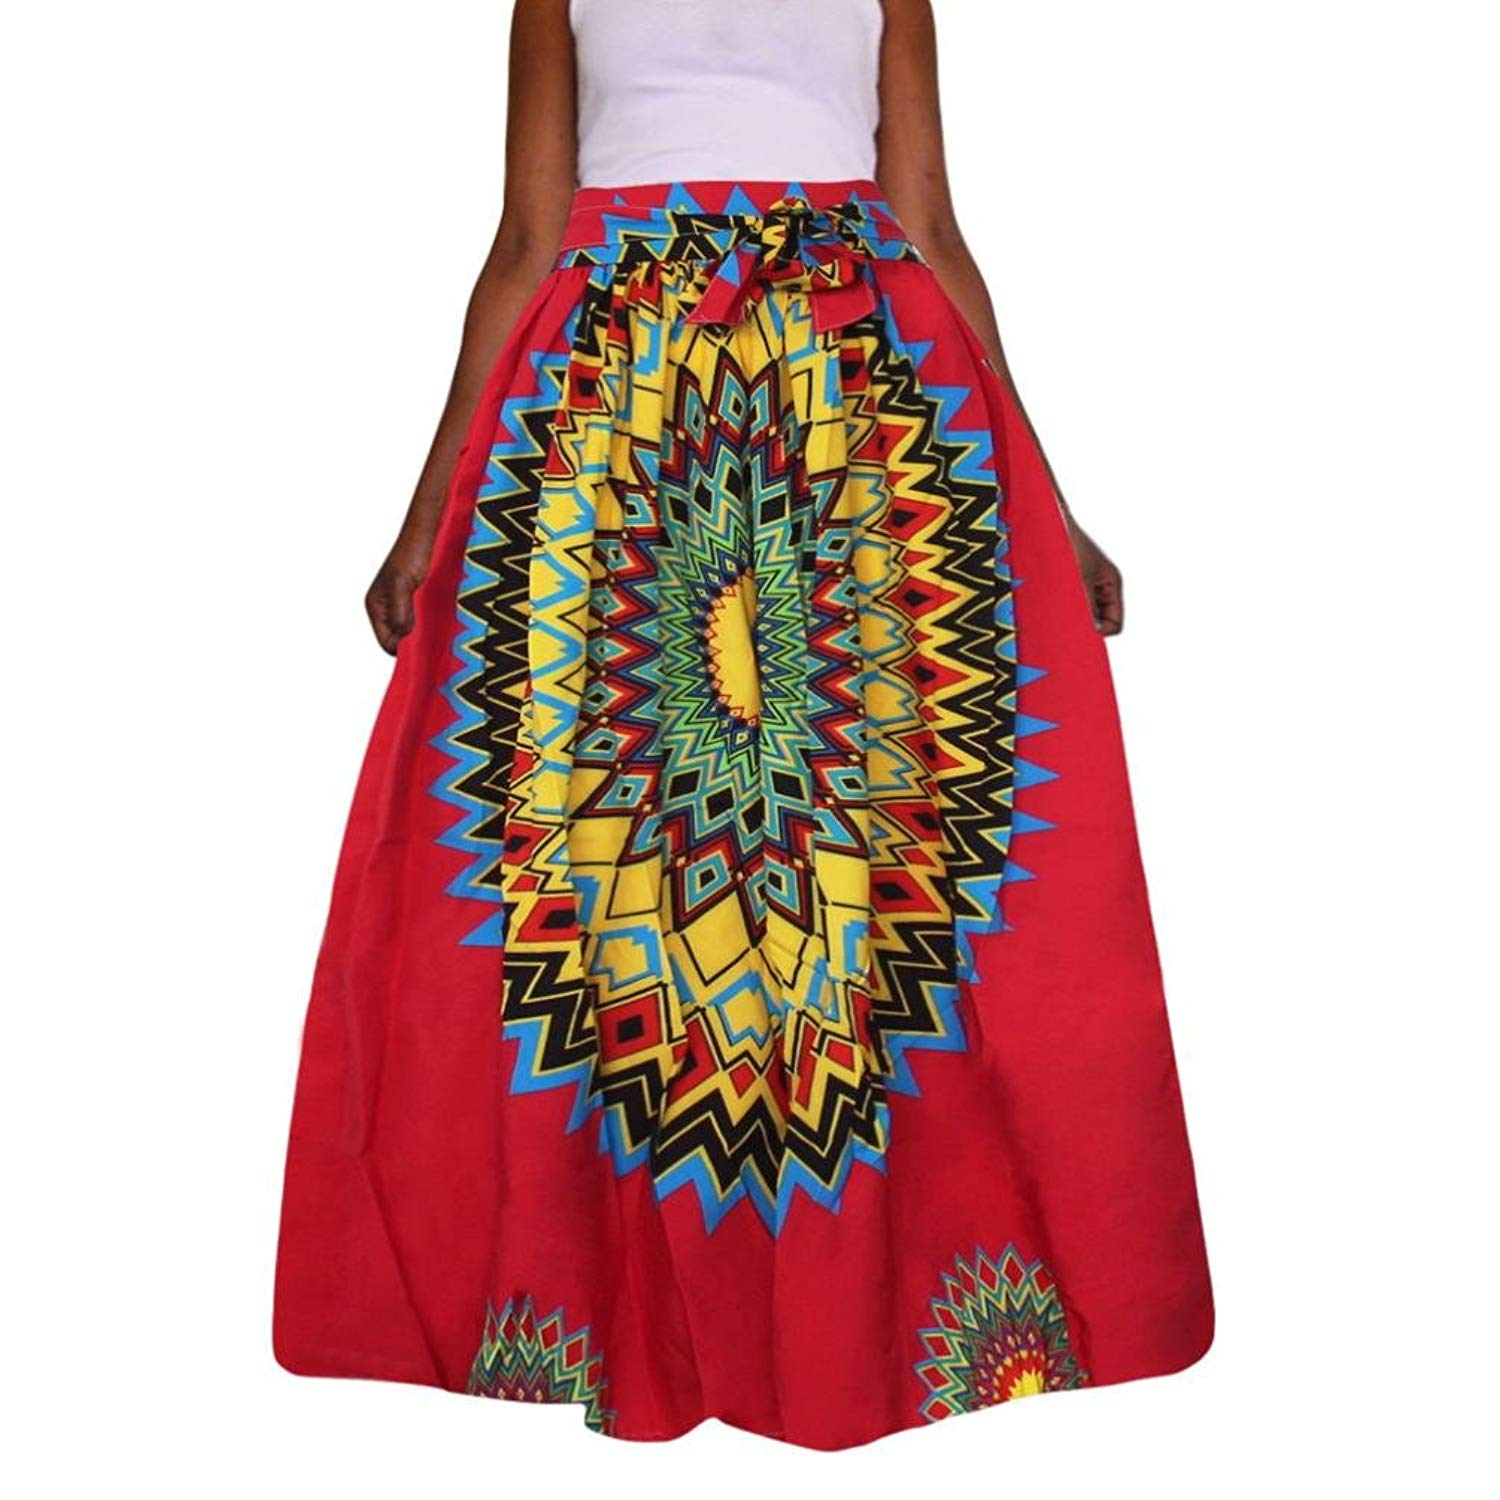 6e98a4bc156050 Get Quotations · Hometom Women Long Maxi Skirt, African Dashiki Print  Chiffon High Waist Party Boho Ankara Maxi